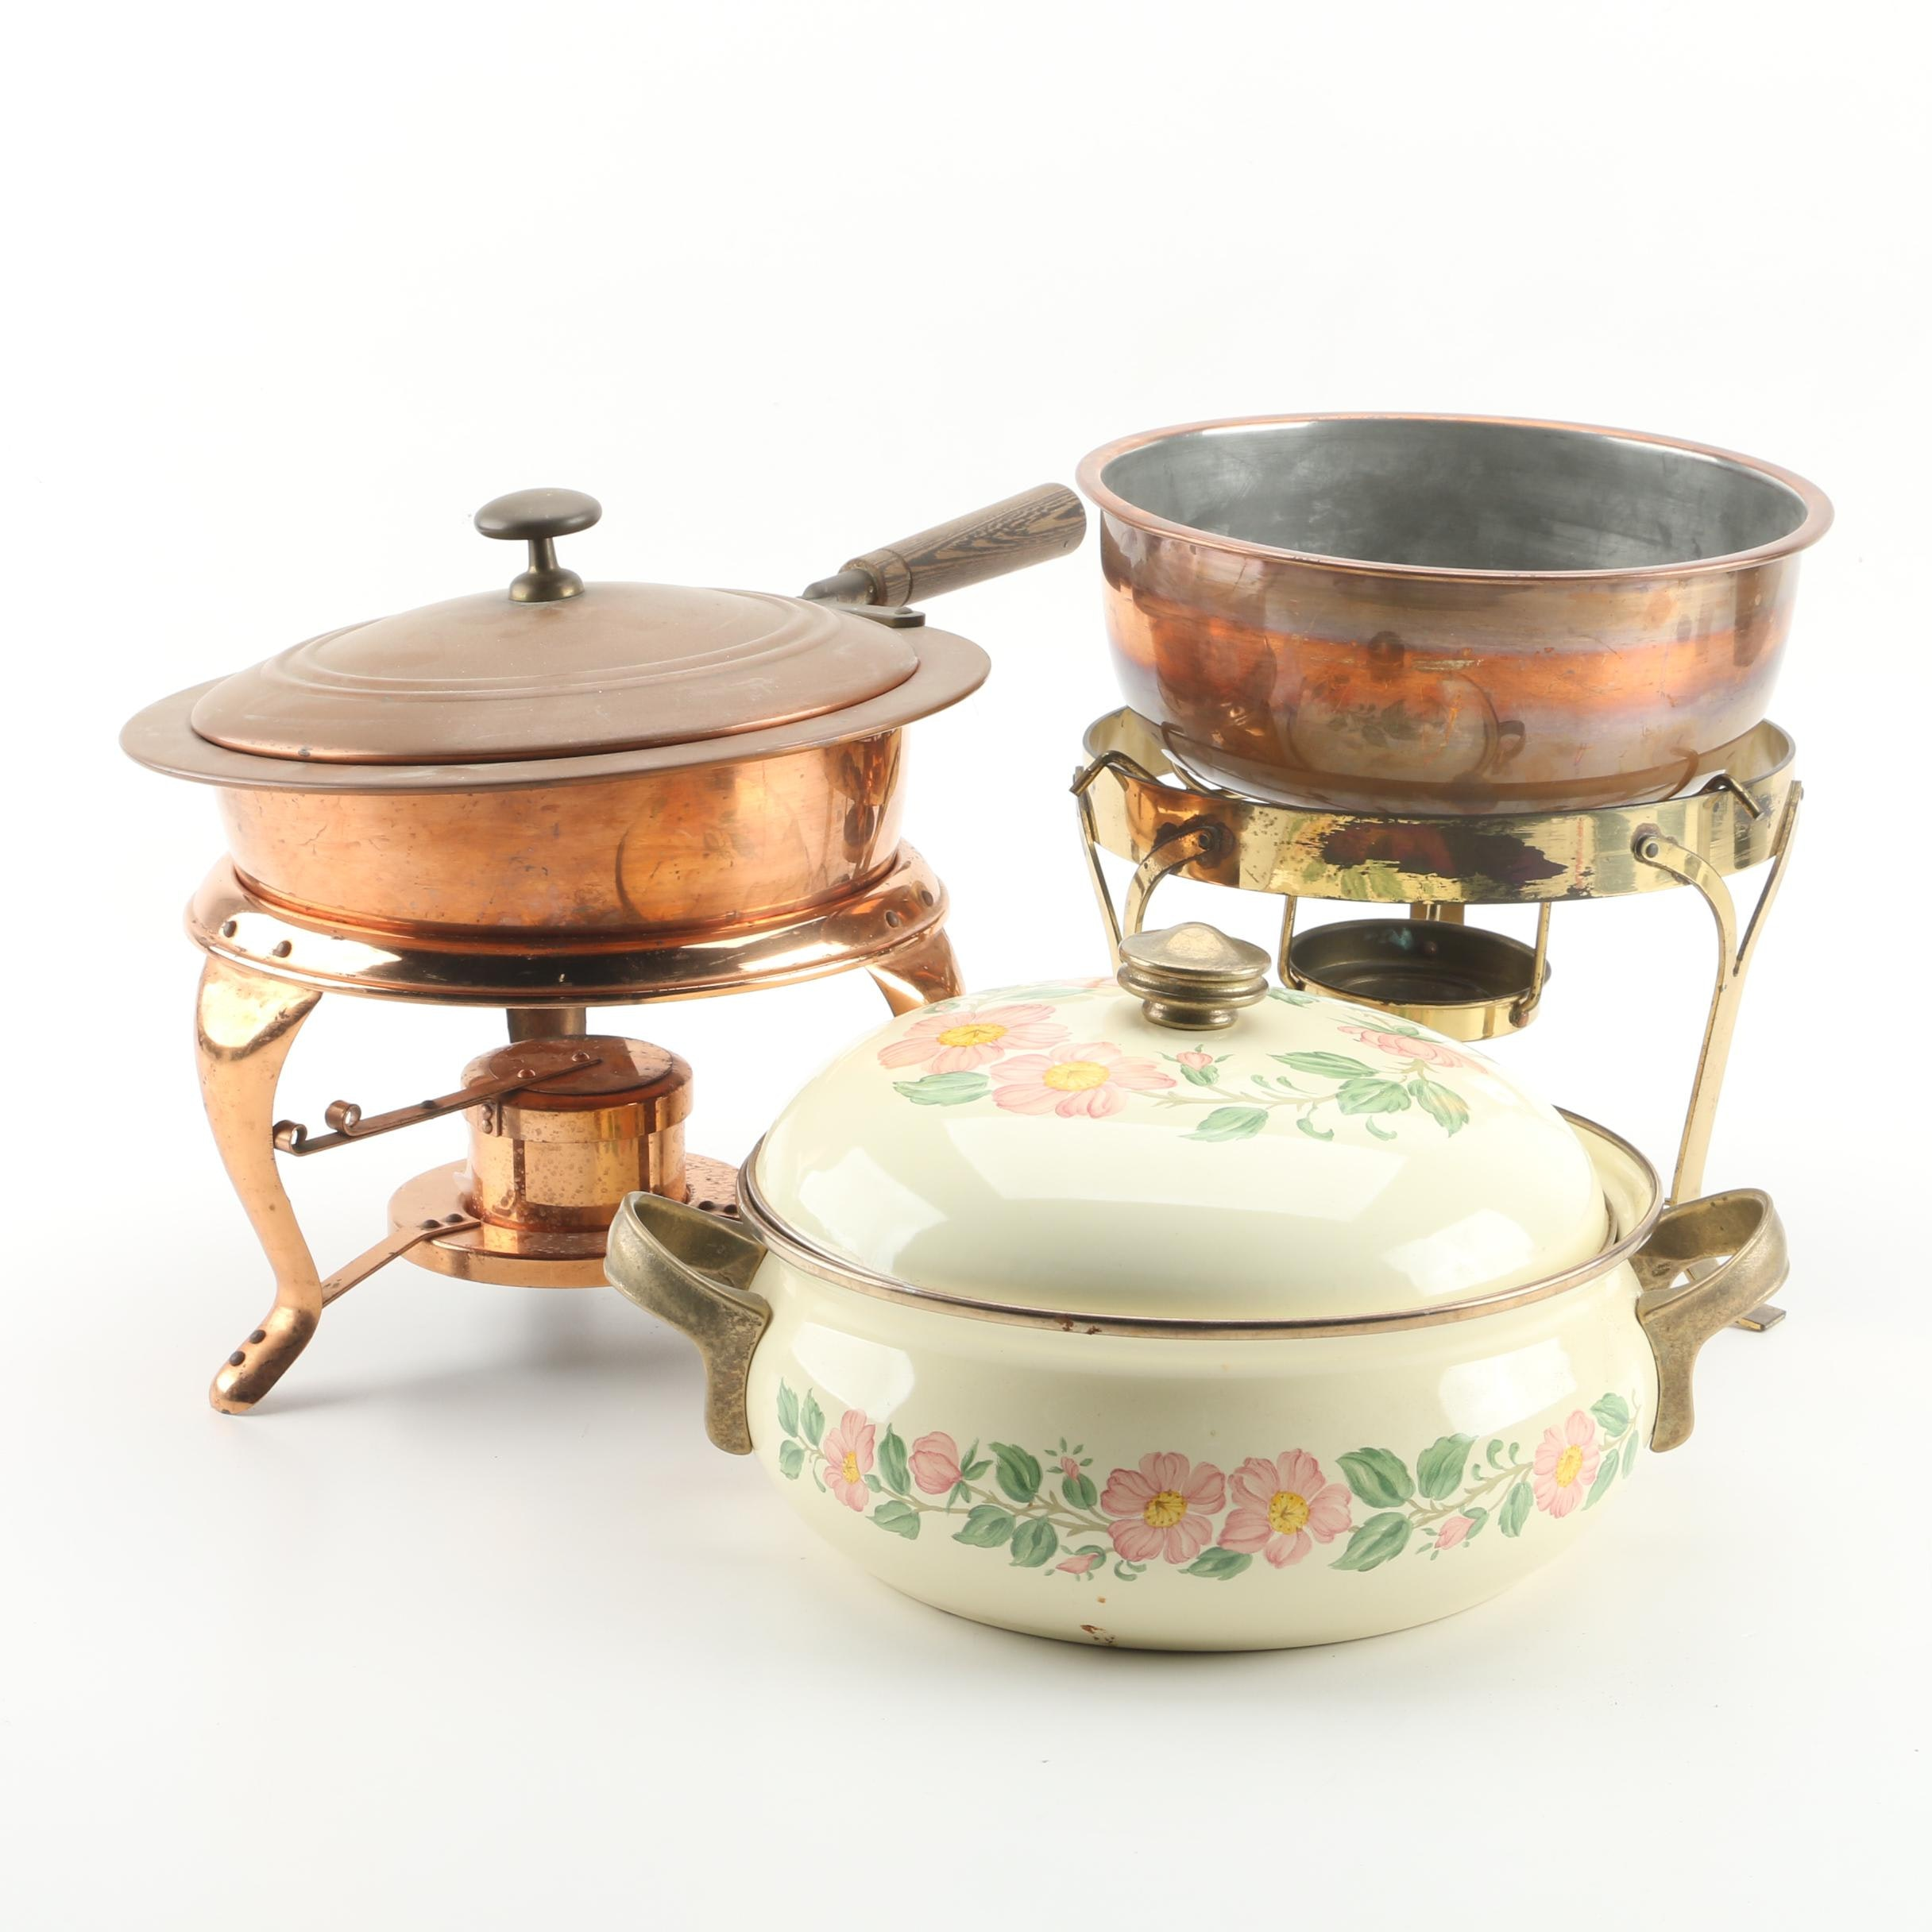 Daalderop Holland Copper and Brass Chafing Dishes with Franciscan Casserole Dish